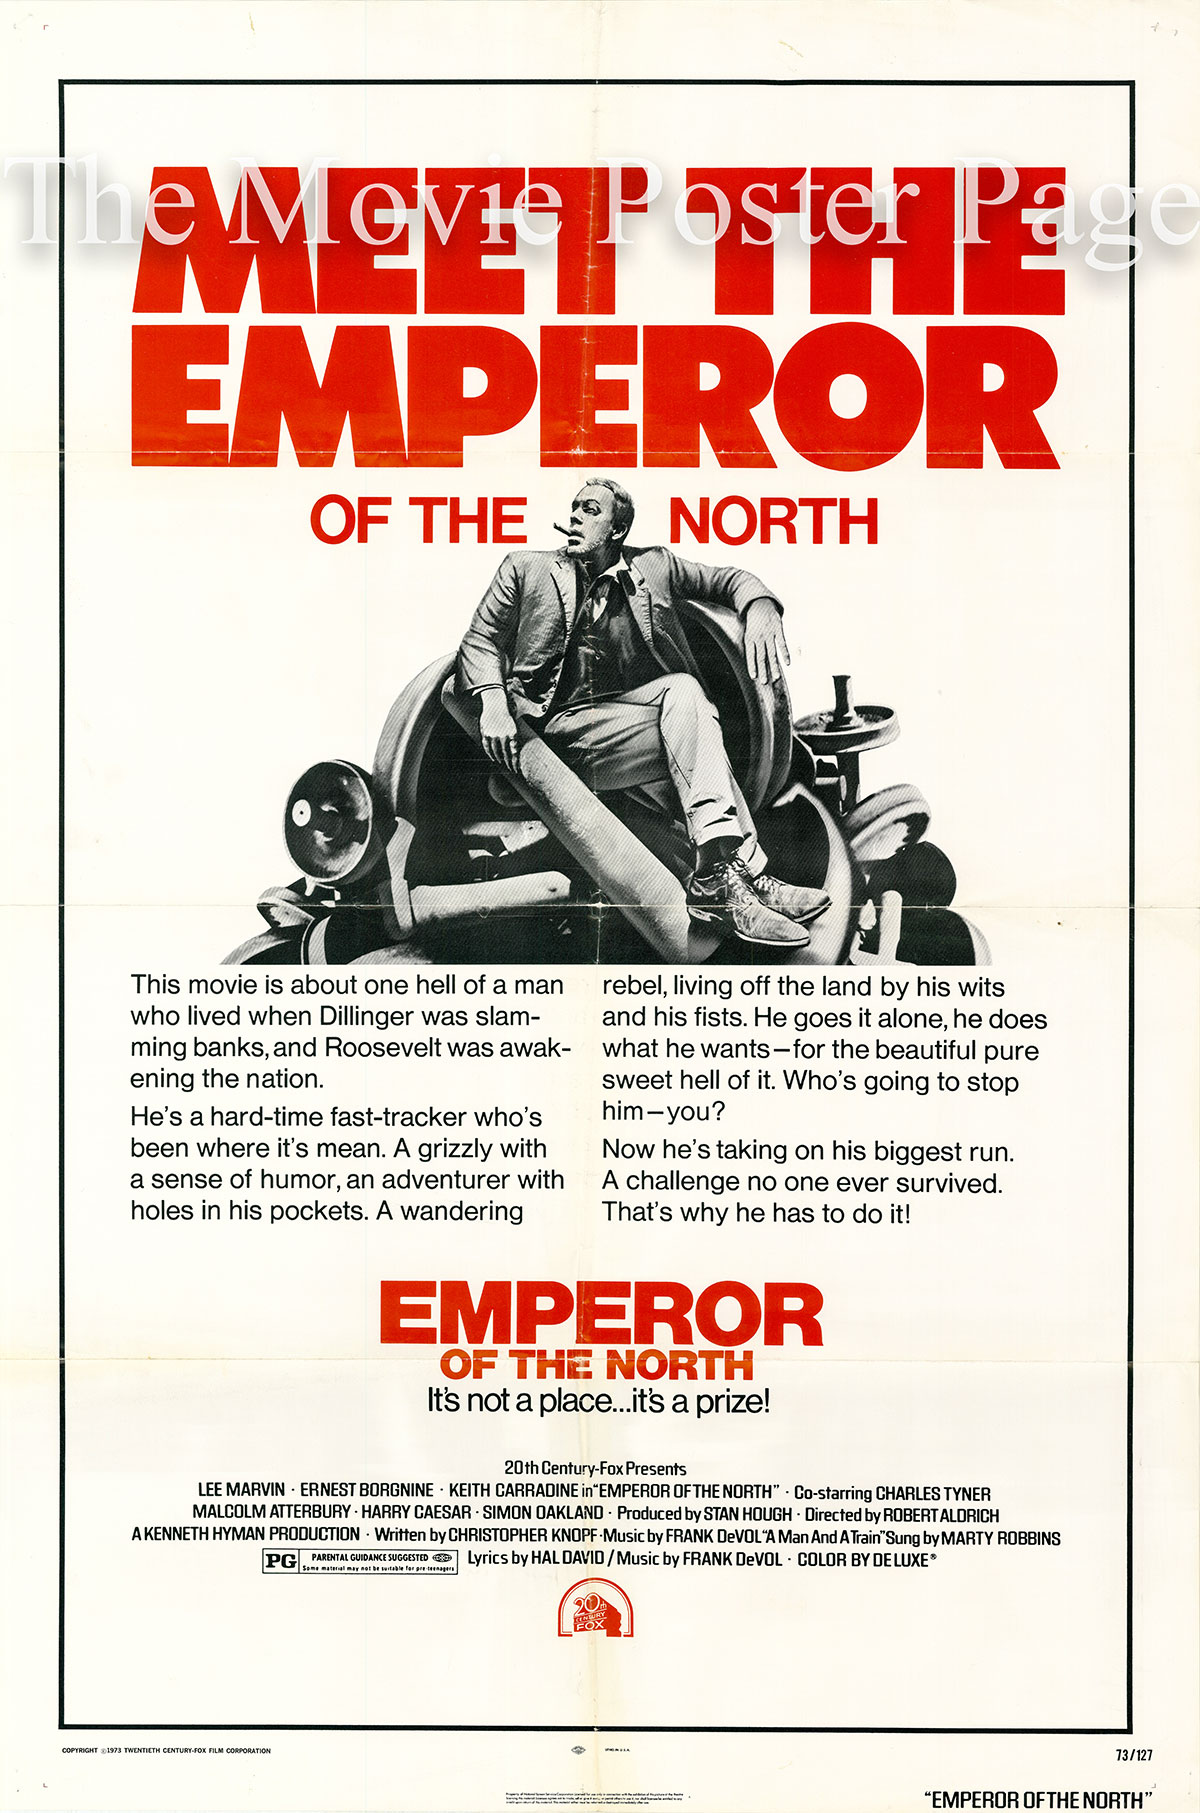 PIctured is a US one-sheet poster for the 1973 Robert Aldrich film Emperor of the North starring Lee Marvin.